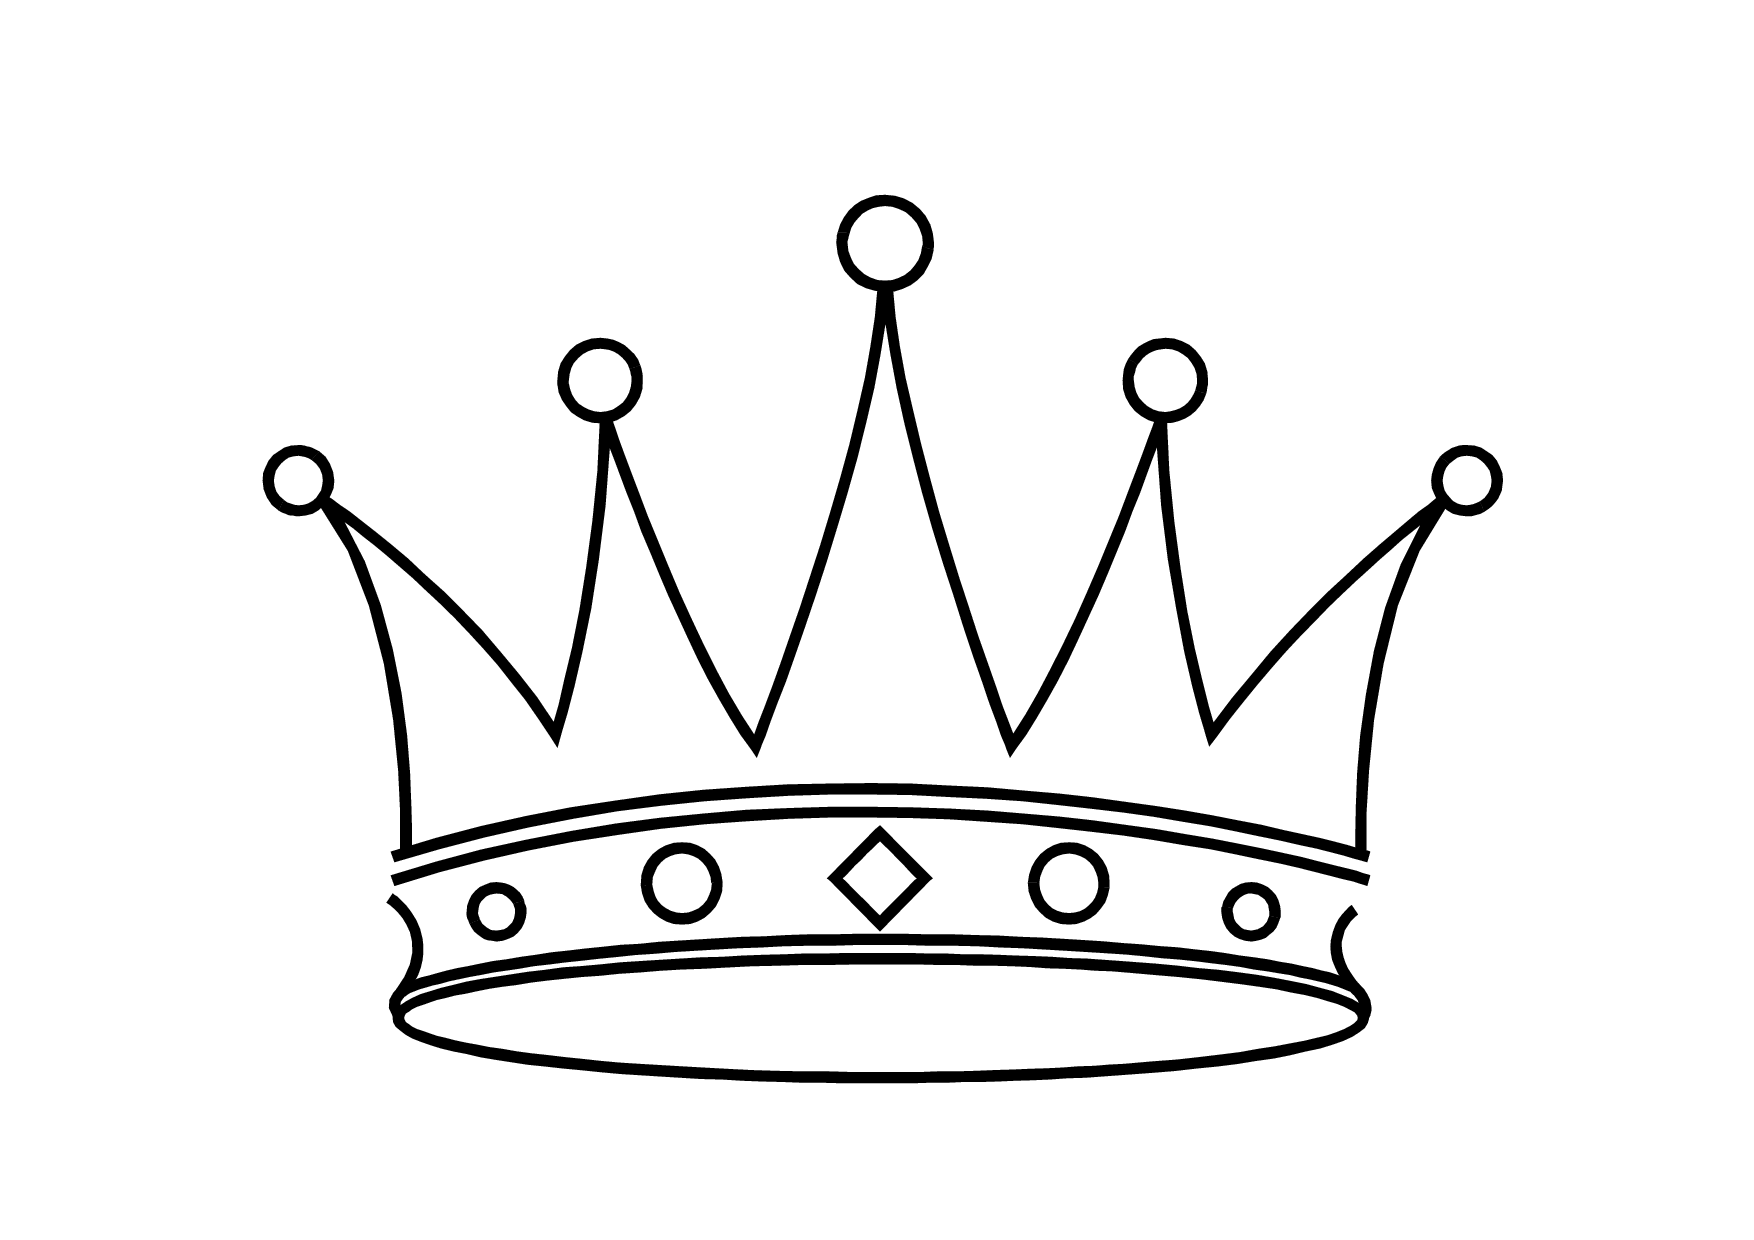 how to draw a crown simple king crown drawing at paintingvalleycom explore draw crown a to how